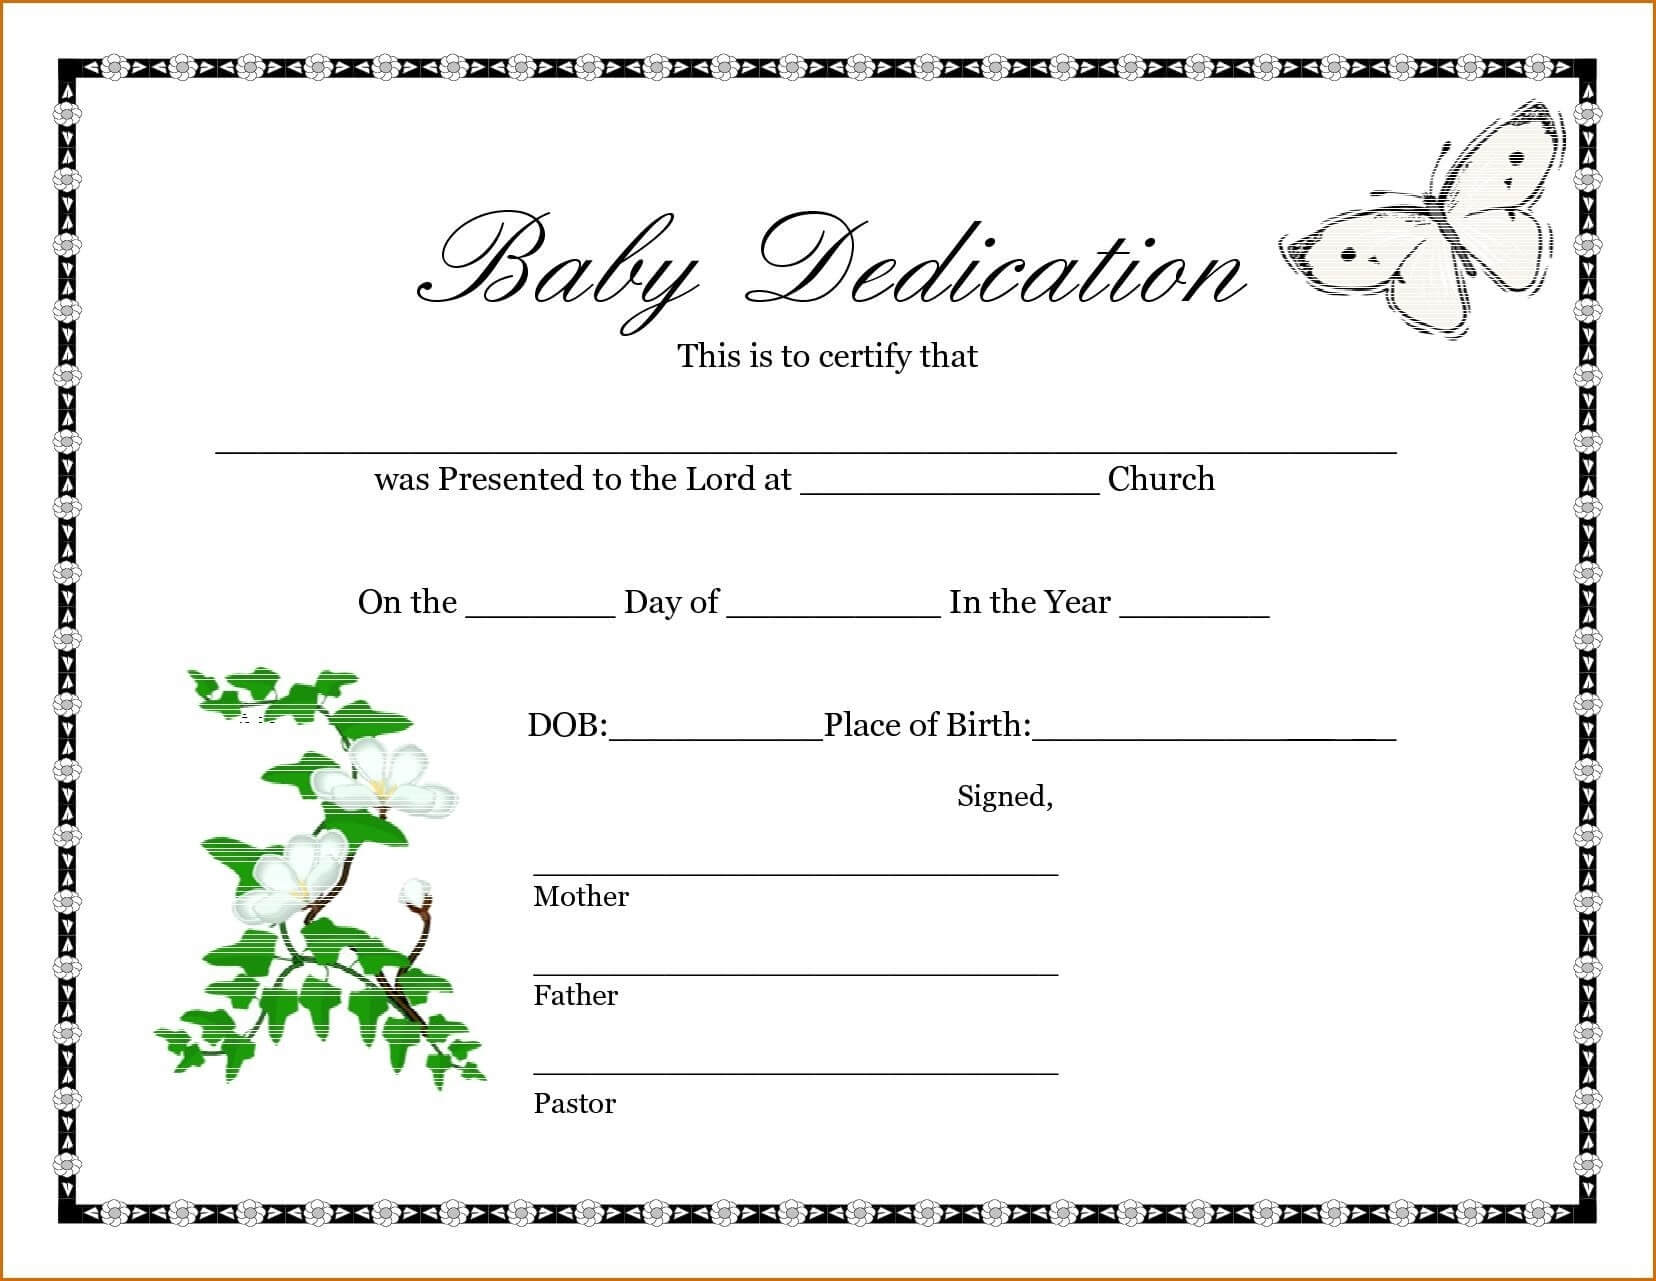 A Birth Certificate Template   Safebest.xyz For Build A Bear Birth Certificate Template